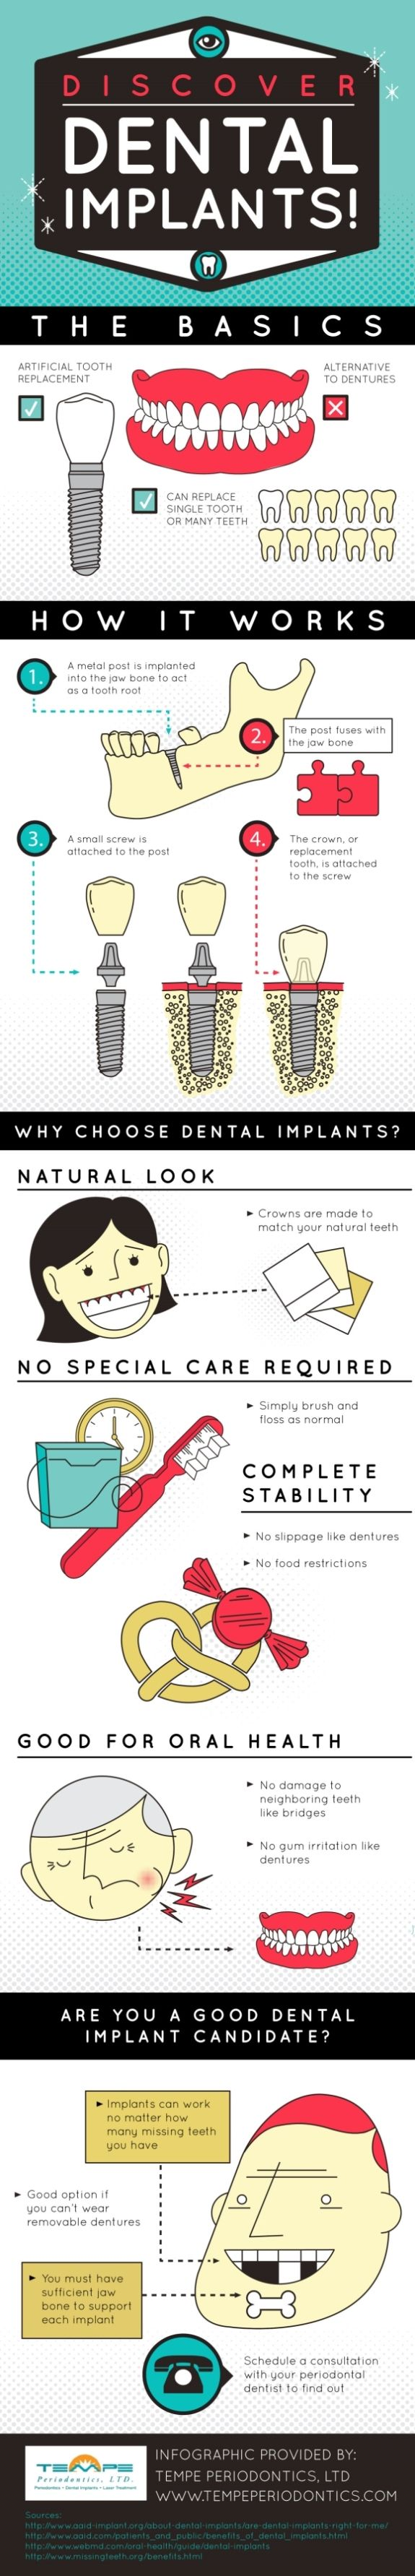 Dental implants patients must have sufficient jaw bone to support each implant. When going on a dental vacation to Mexico, Asia or elsewhere - be sure to use a Board Certified Dentist for the best results. Visit Certified Dentists Internationale for Free